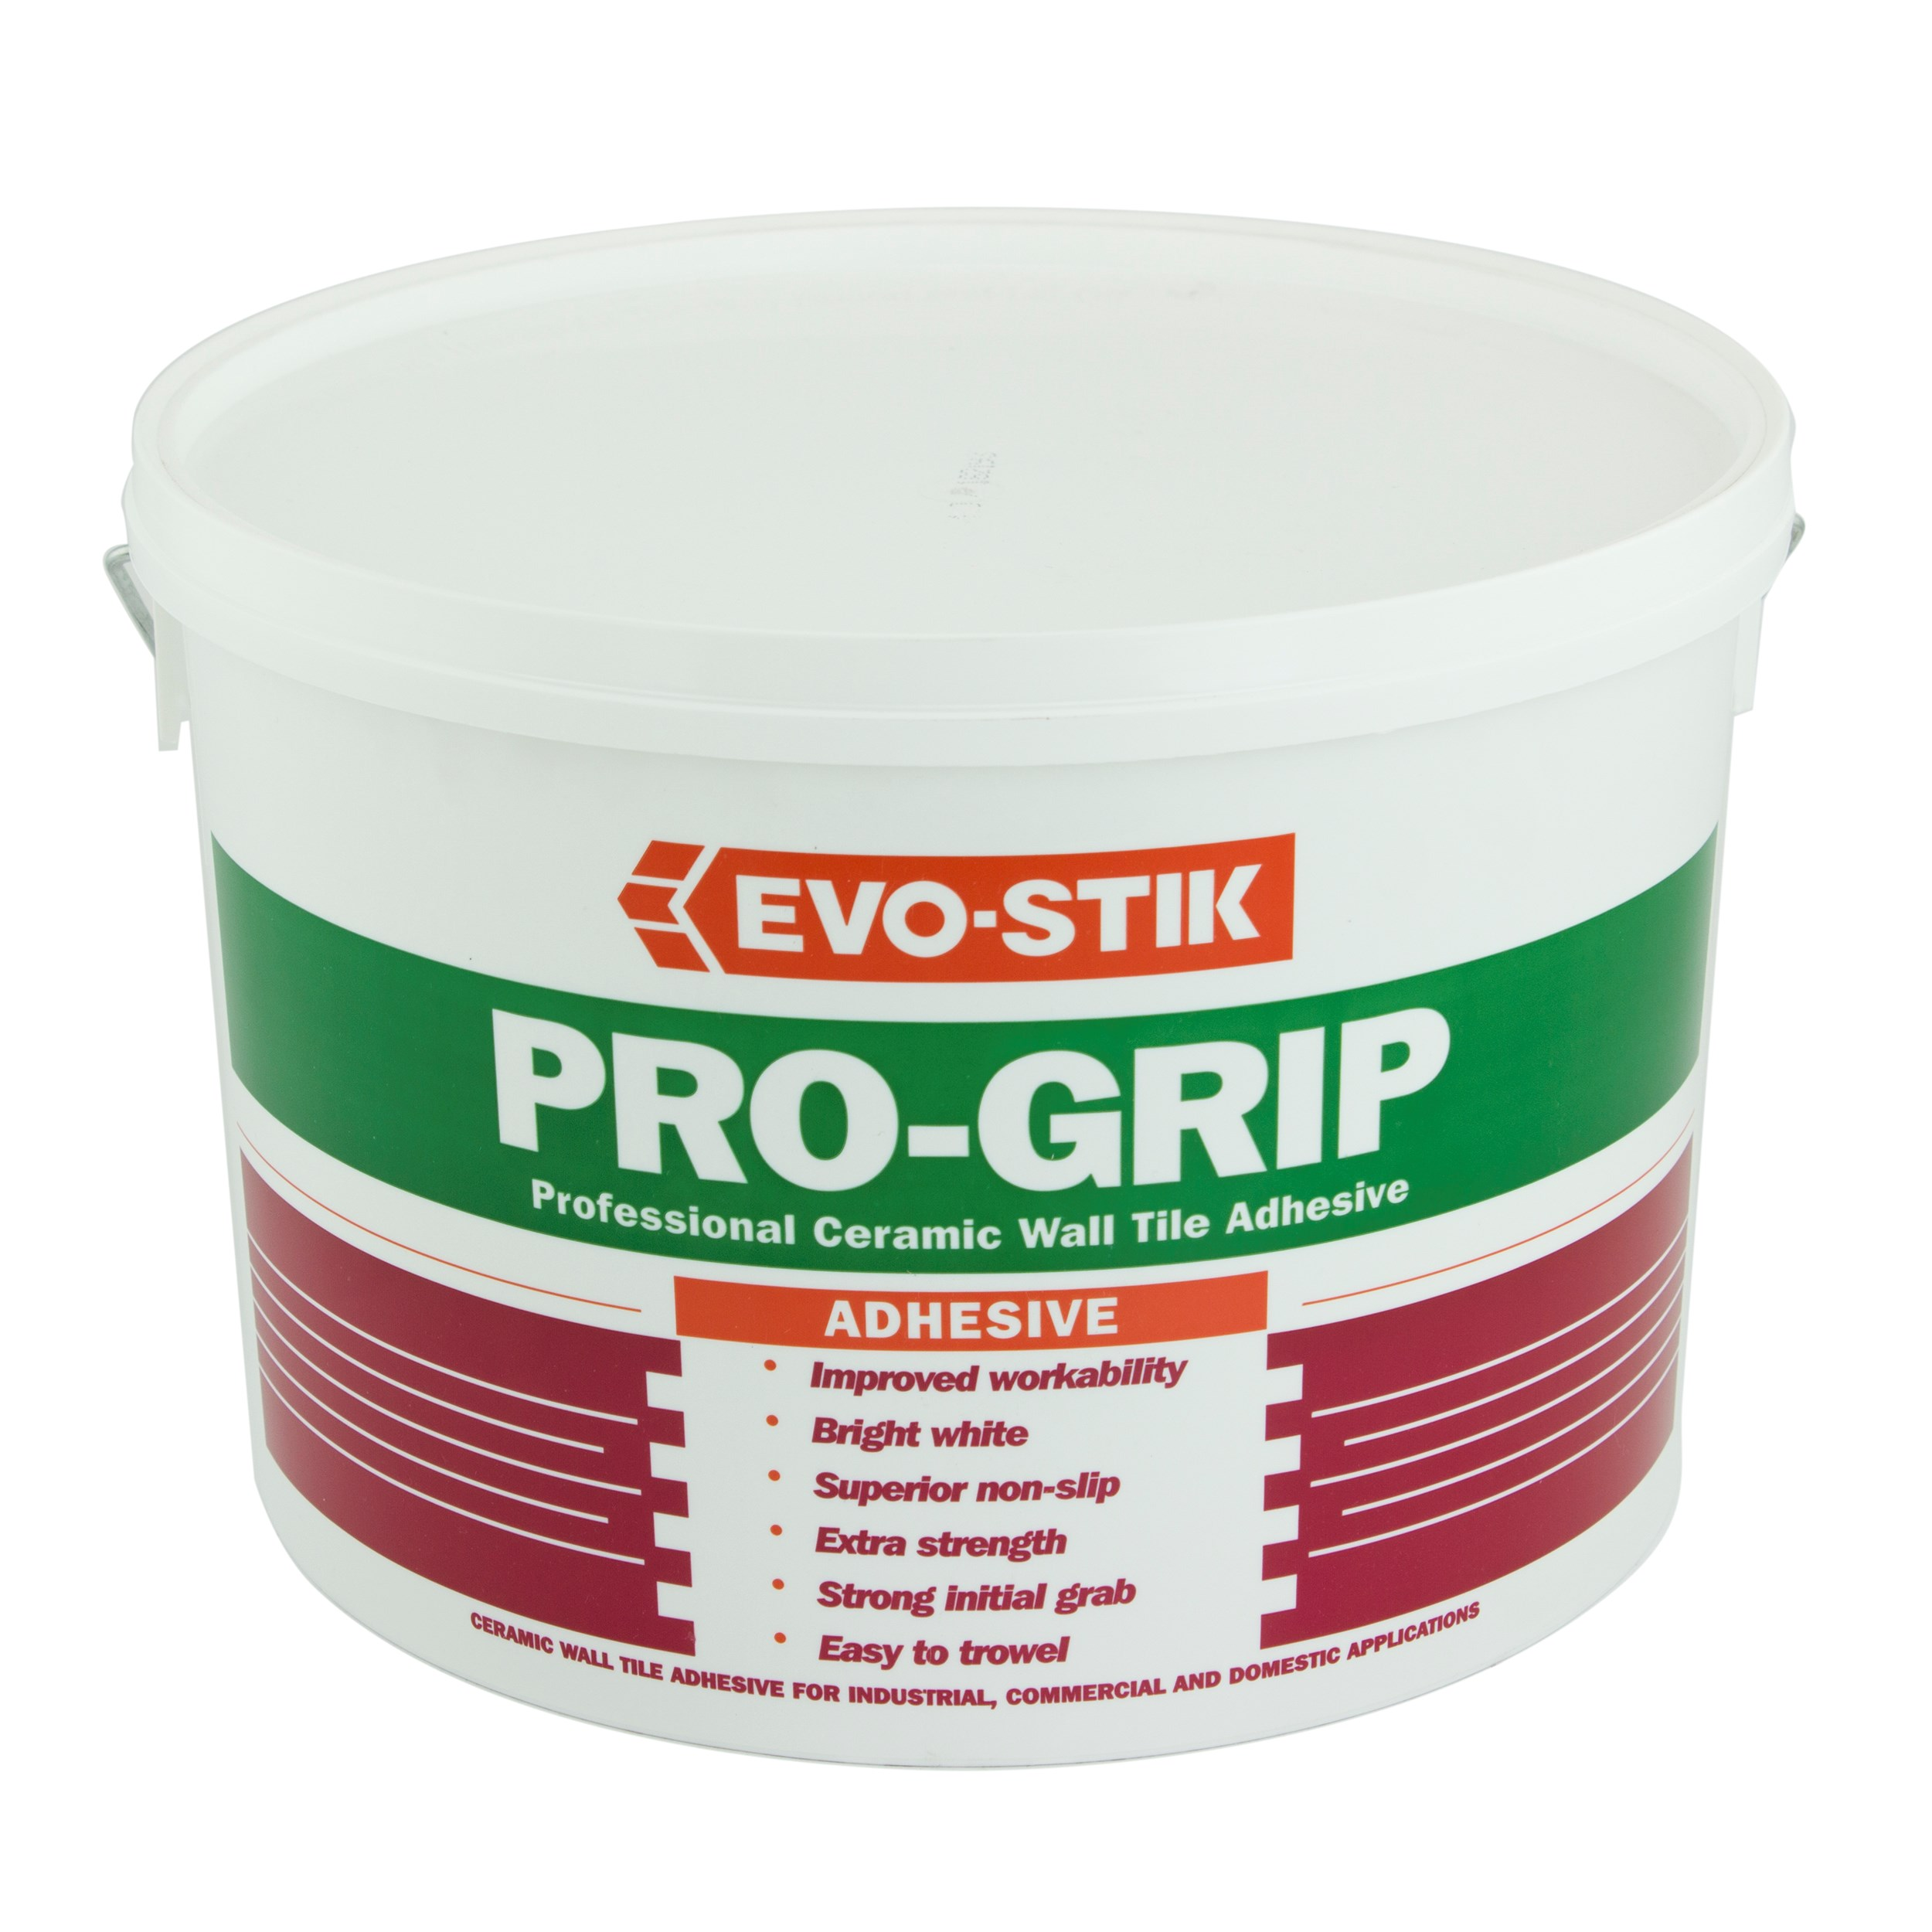 Bathroom Tile Adhesive And Grout: Evo-Stik Pro-Grip Wall Tile Adhesive 16kg - White